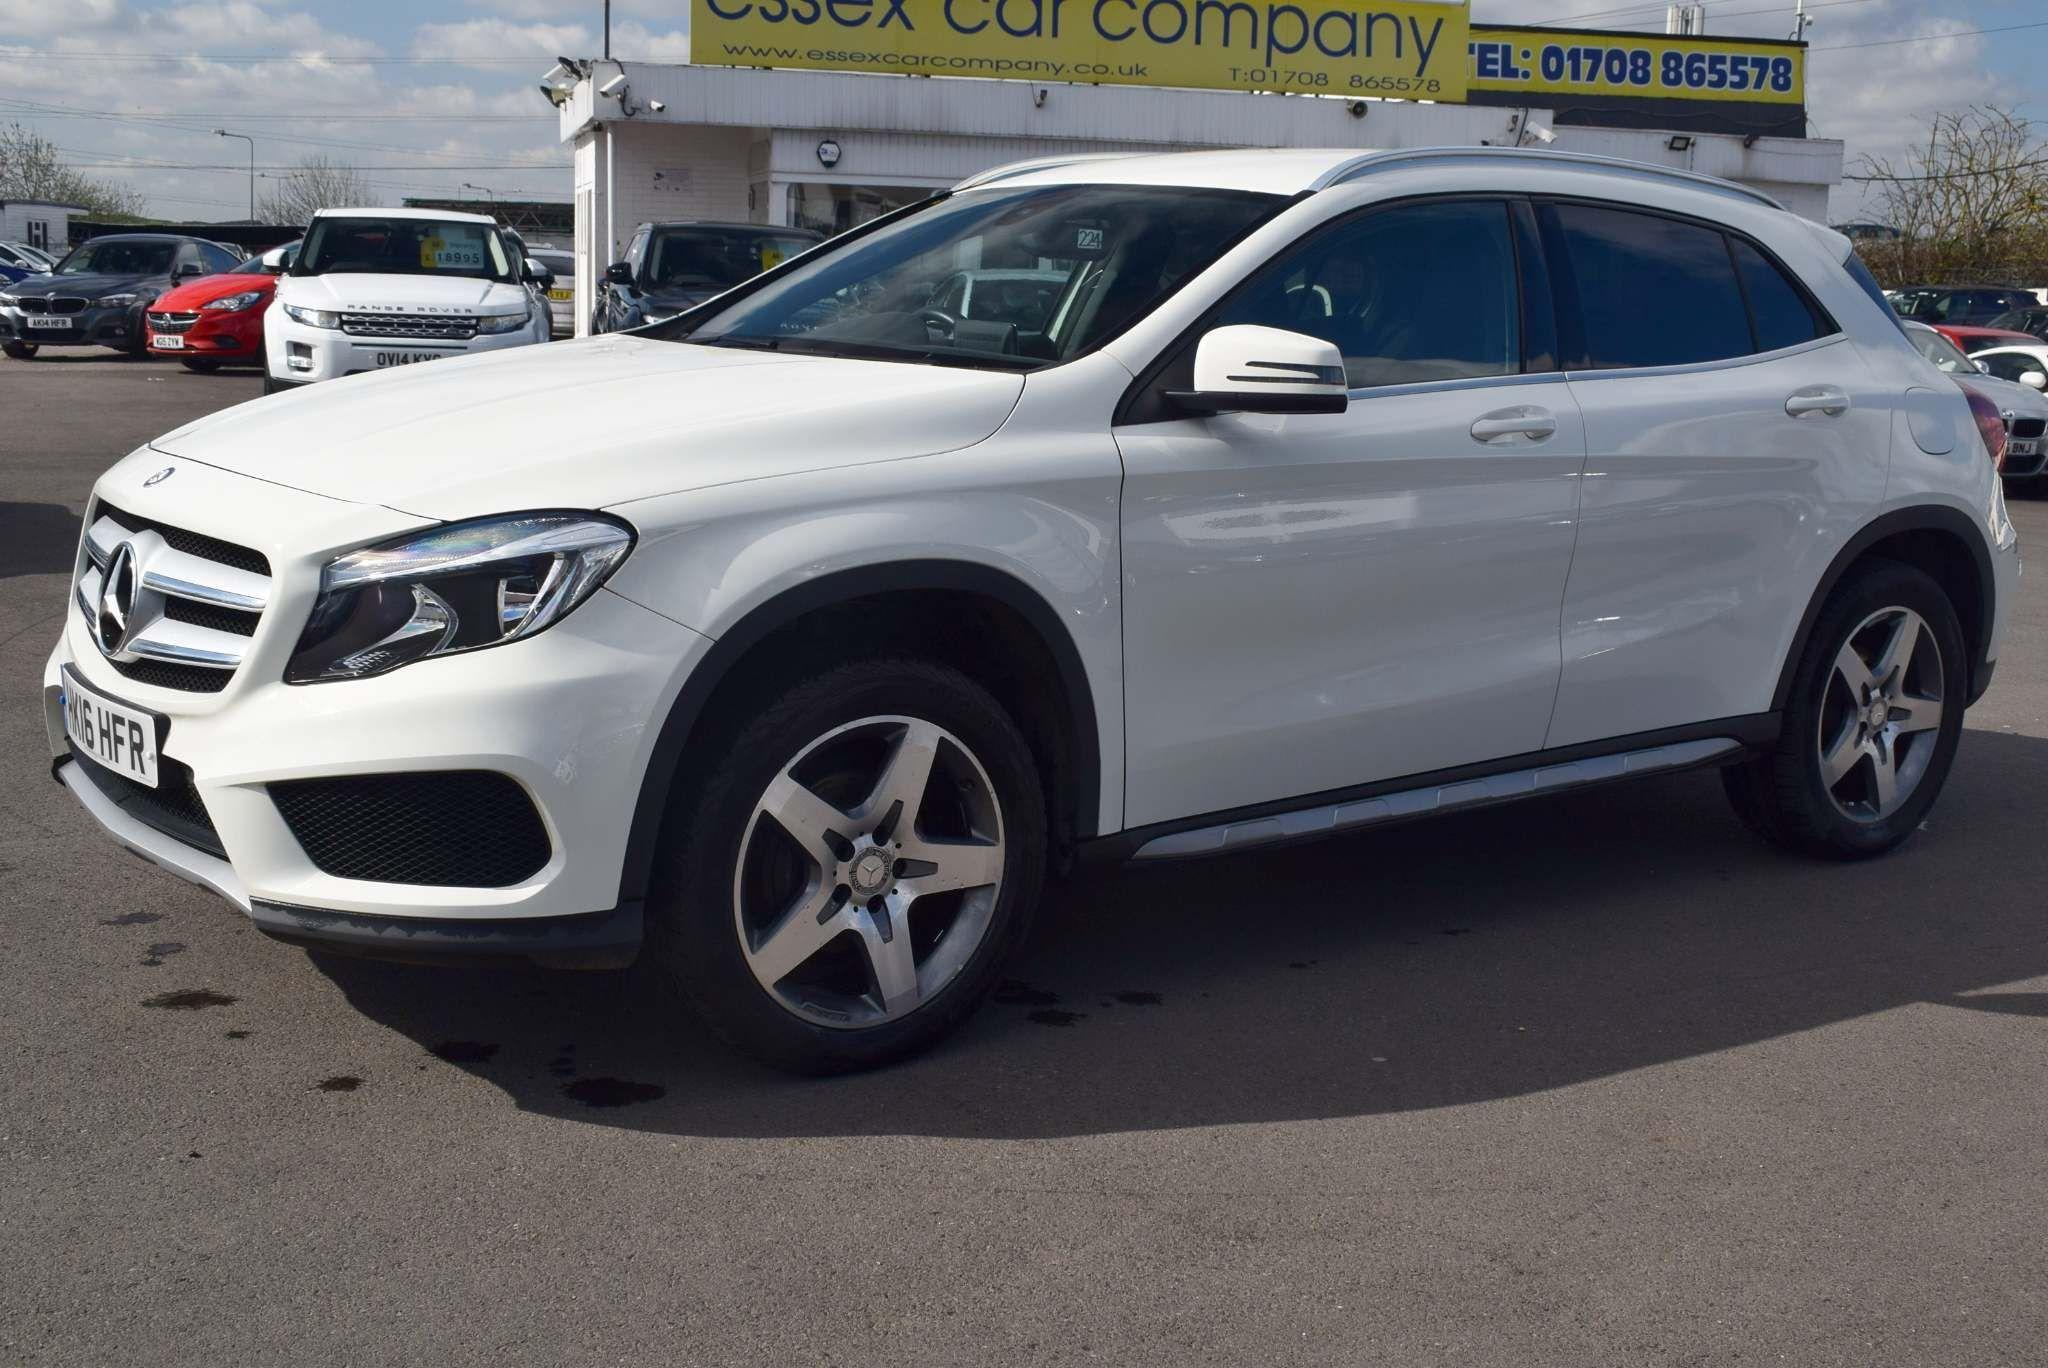 Mercedes-Benz GLA Class 2.1 GLA200 AMG Line 7G-DCT (s/s) 5dr Auto SUV Diesel White